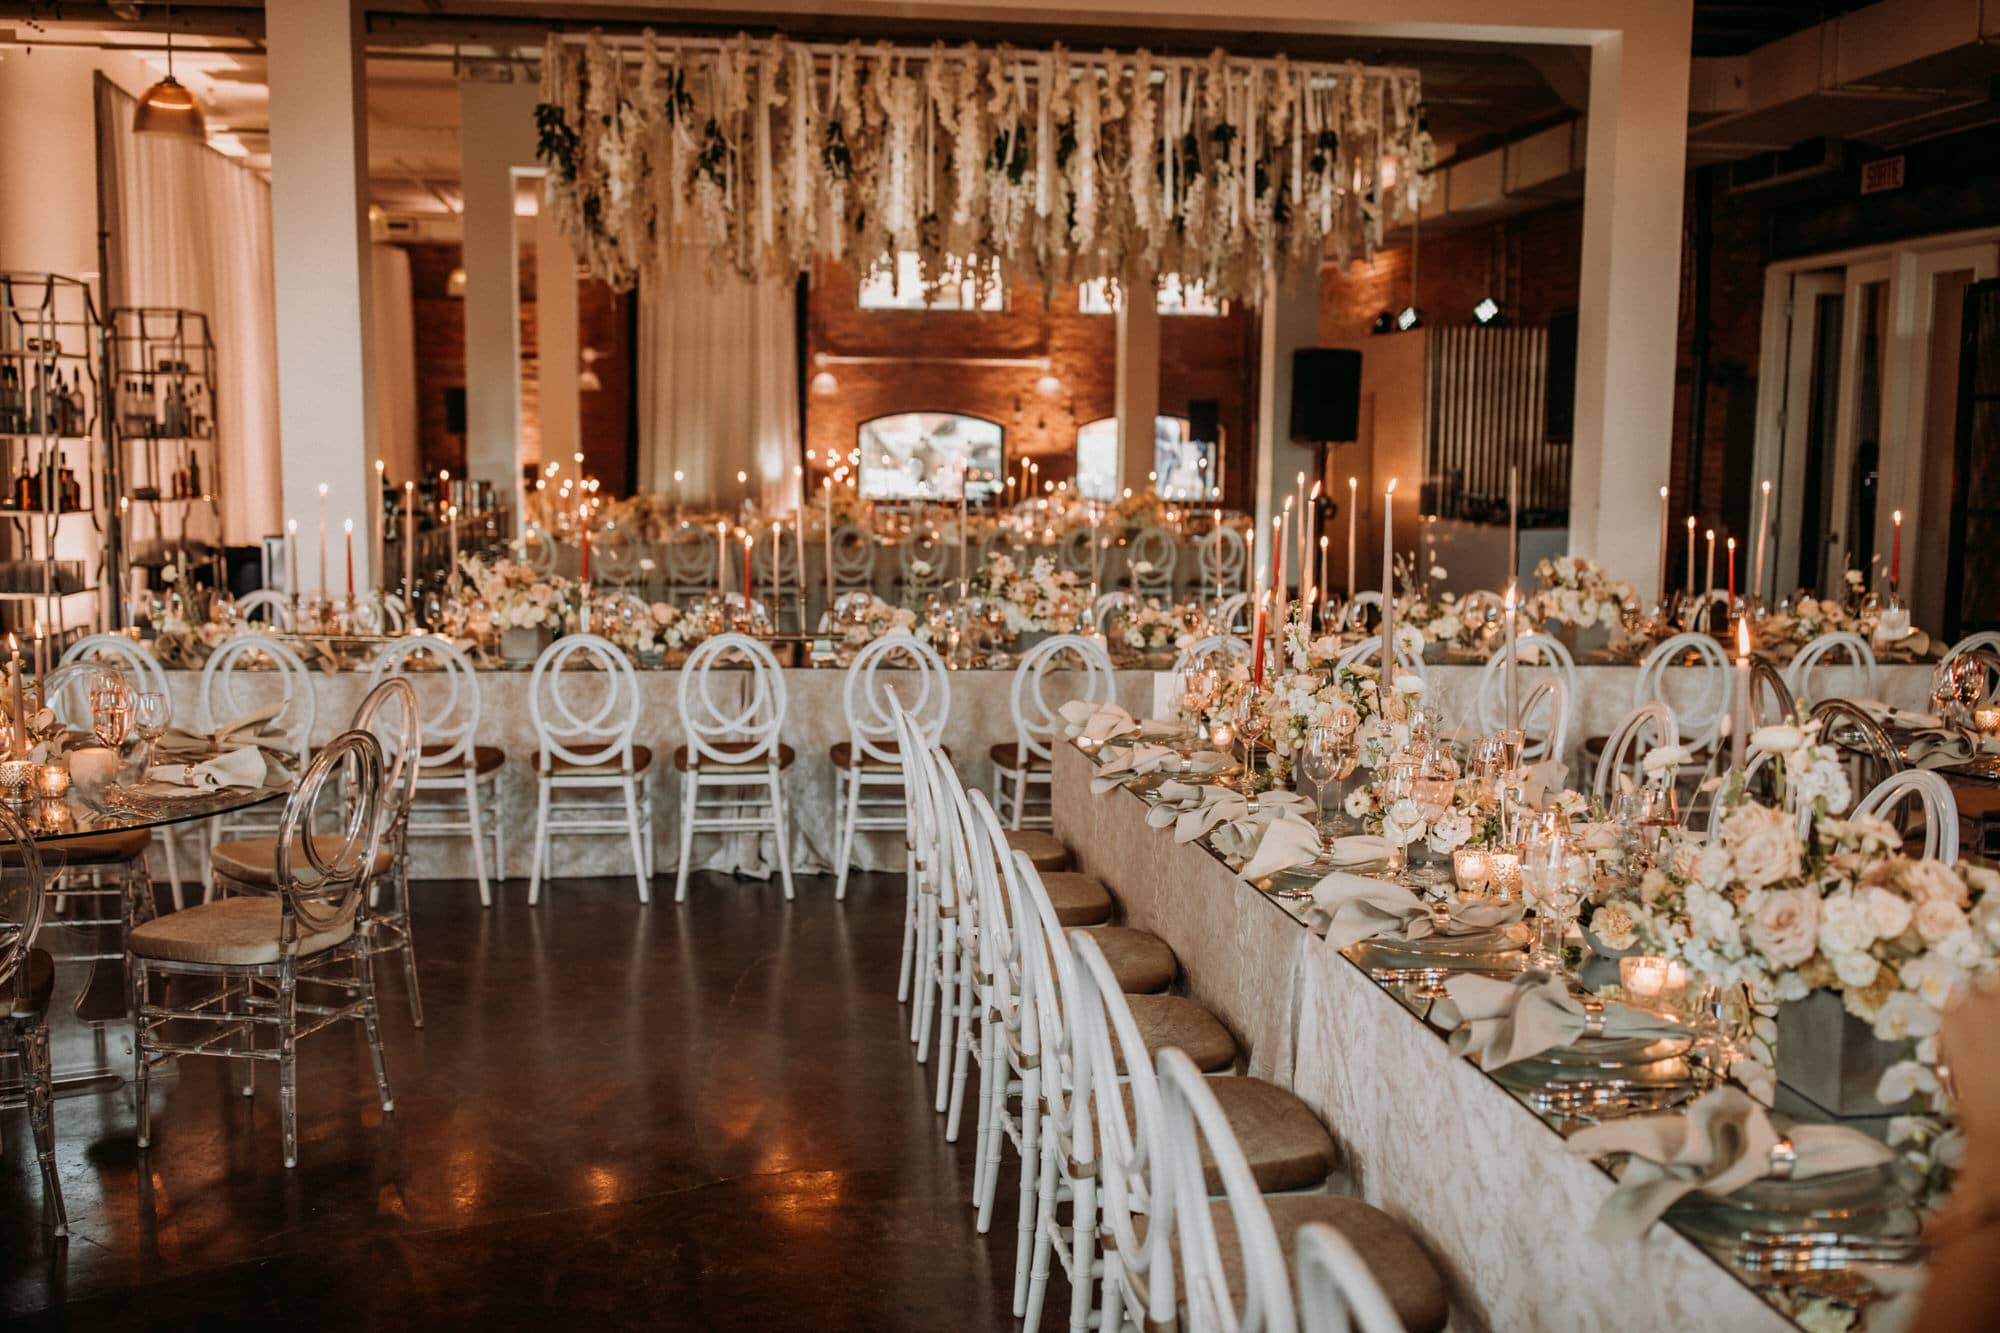 Entrepots Dominion Wedding In Montreal - Peach and white decor - Wedding Photographer Brent Calis